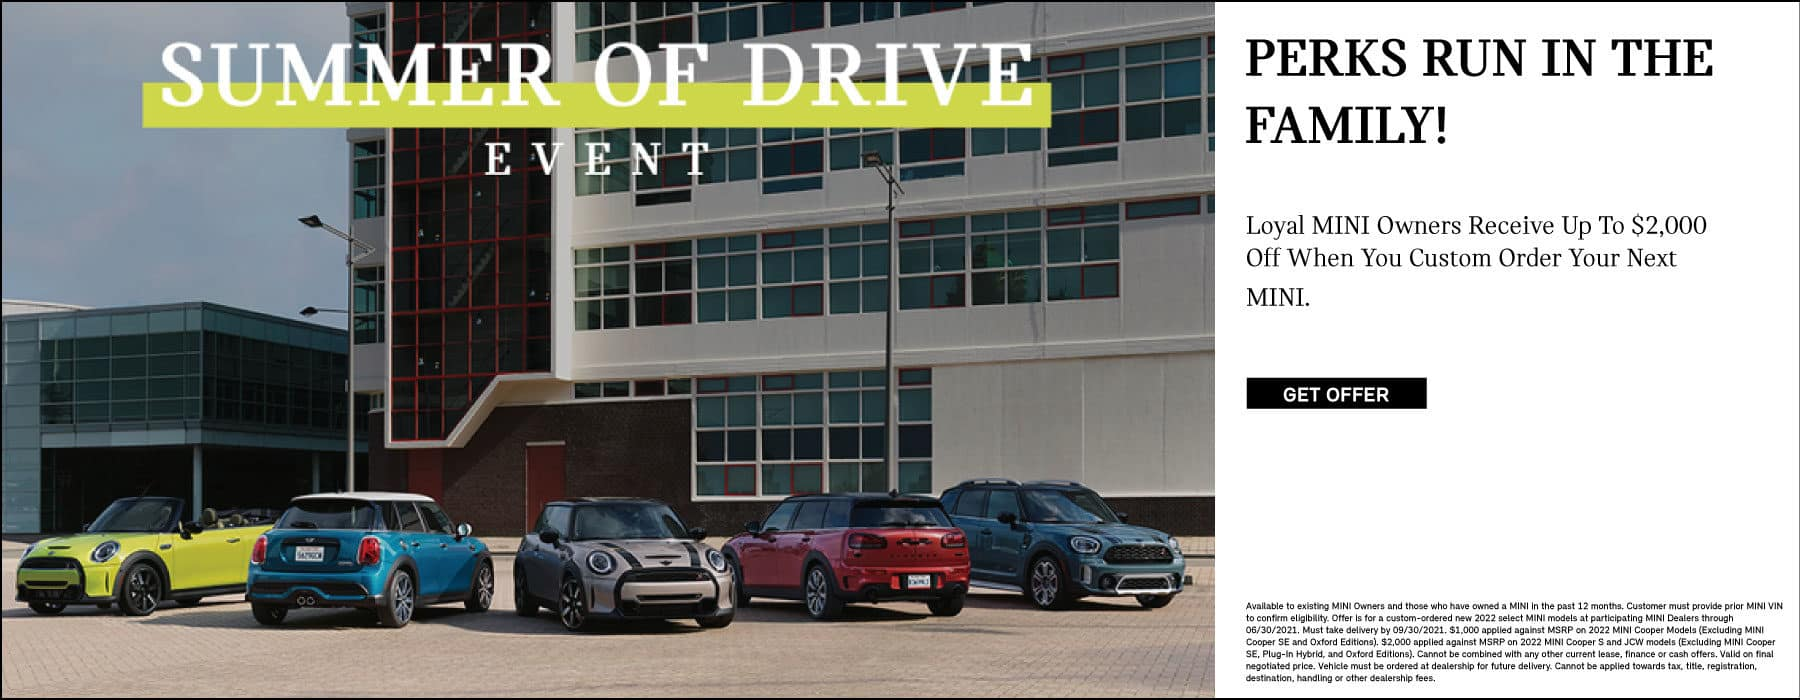 LOYAL MINI OWNERS RECEIVE UP TO $2,000 OFF WHEN YOU CUSTOM ORDER YOUR NEXT MINI.